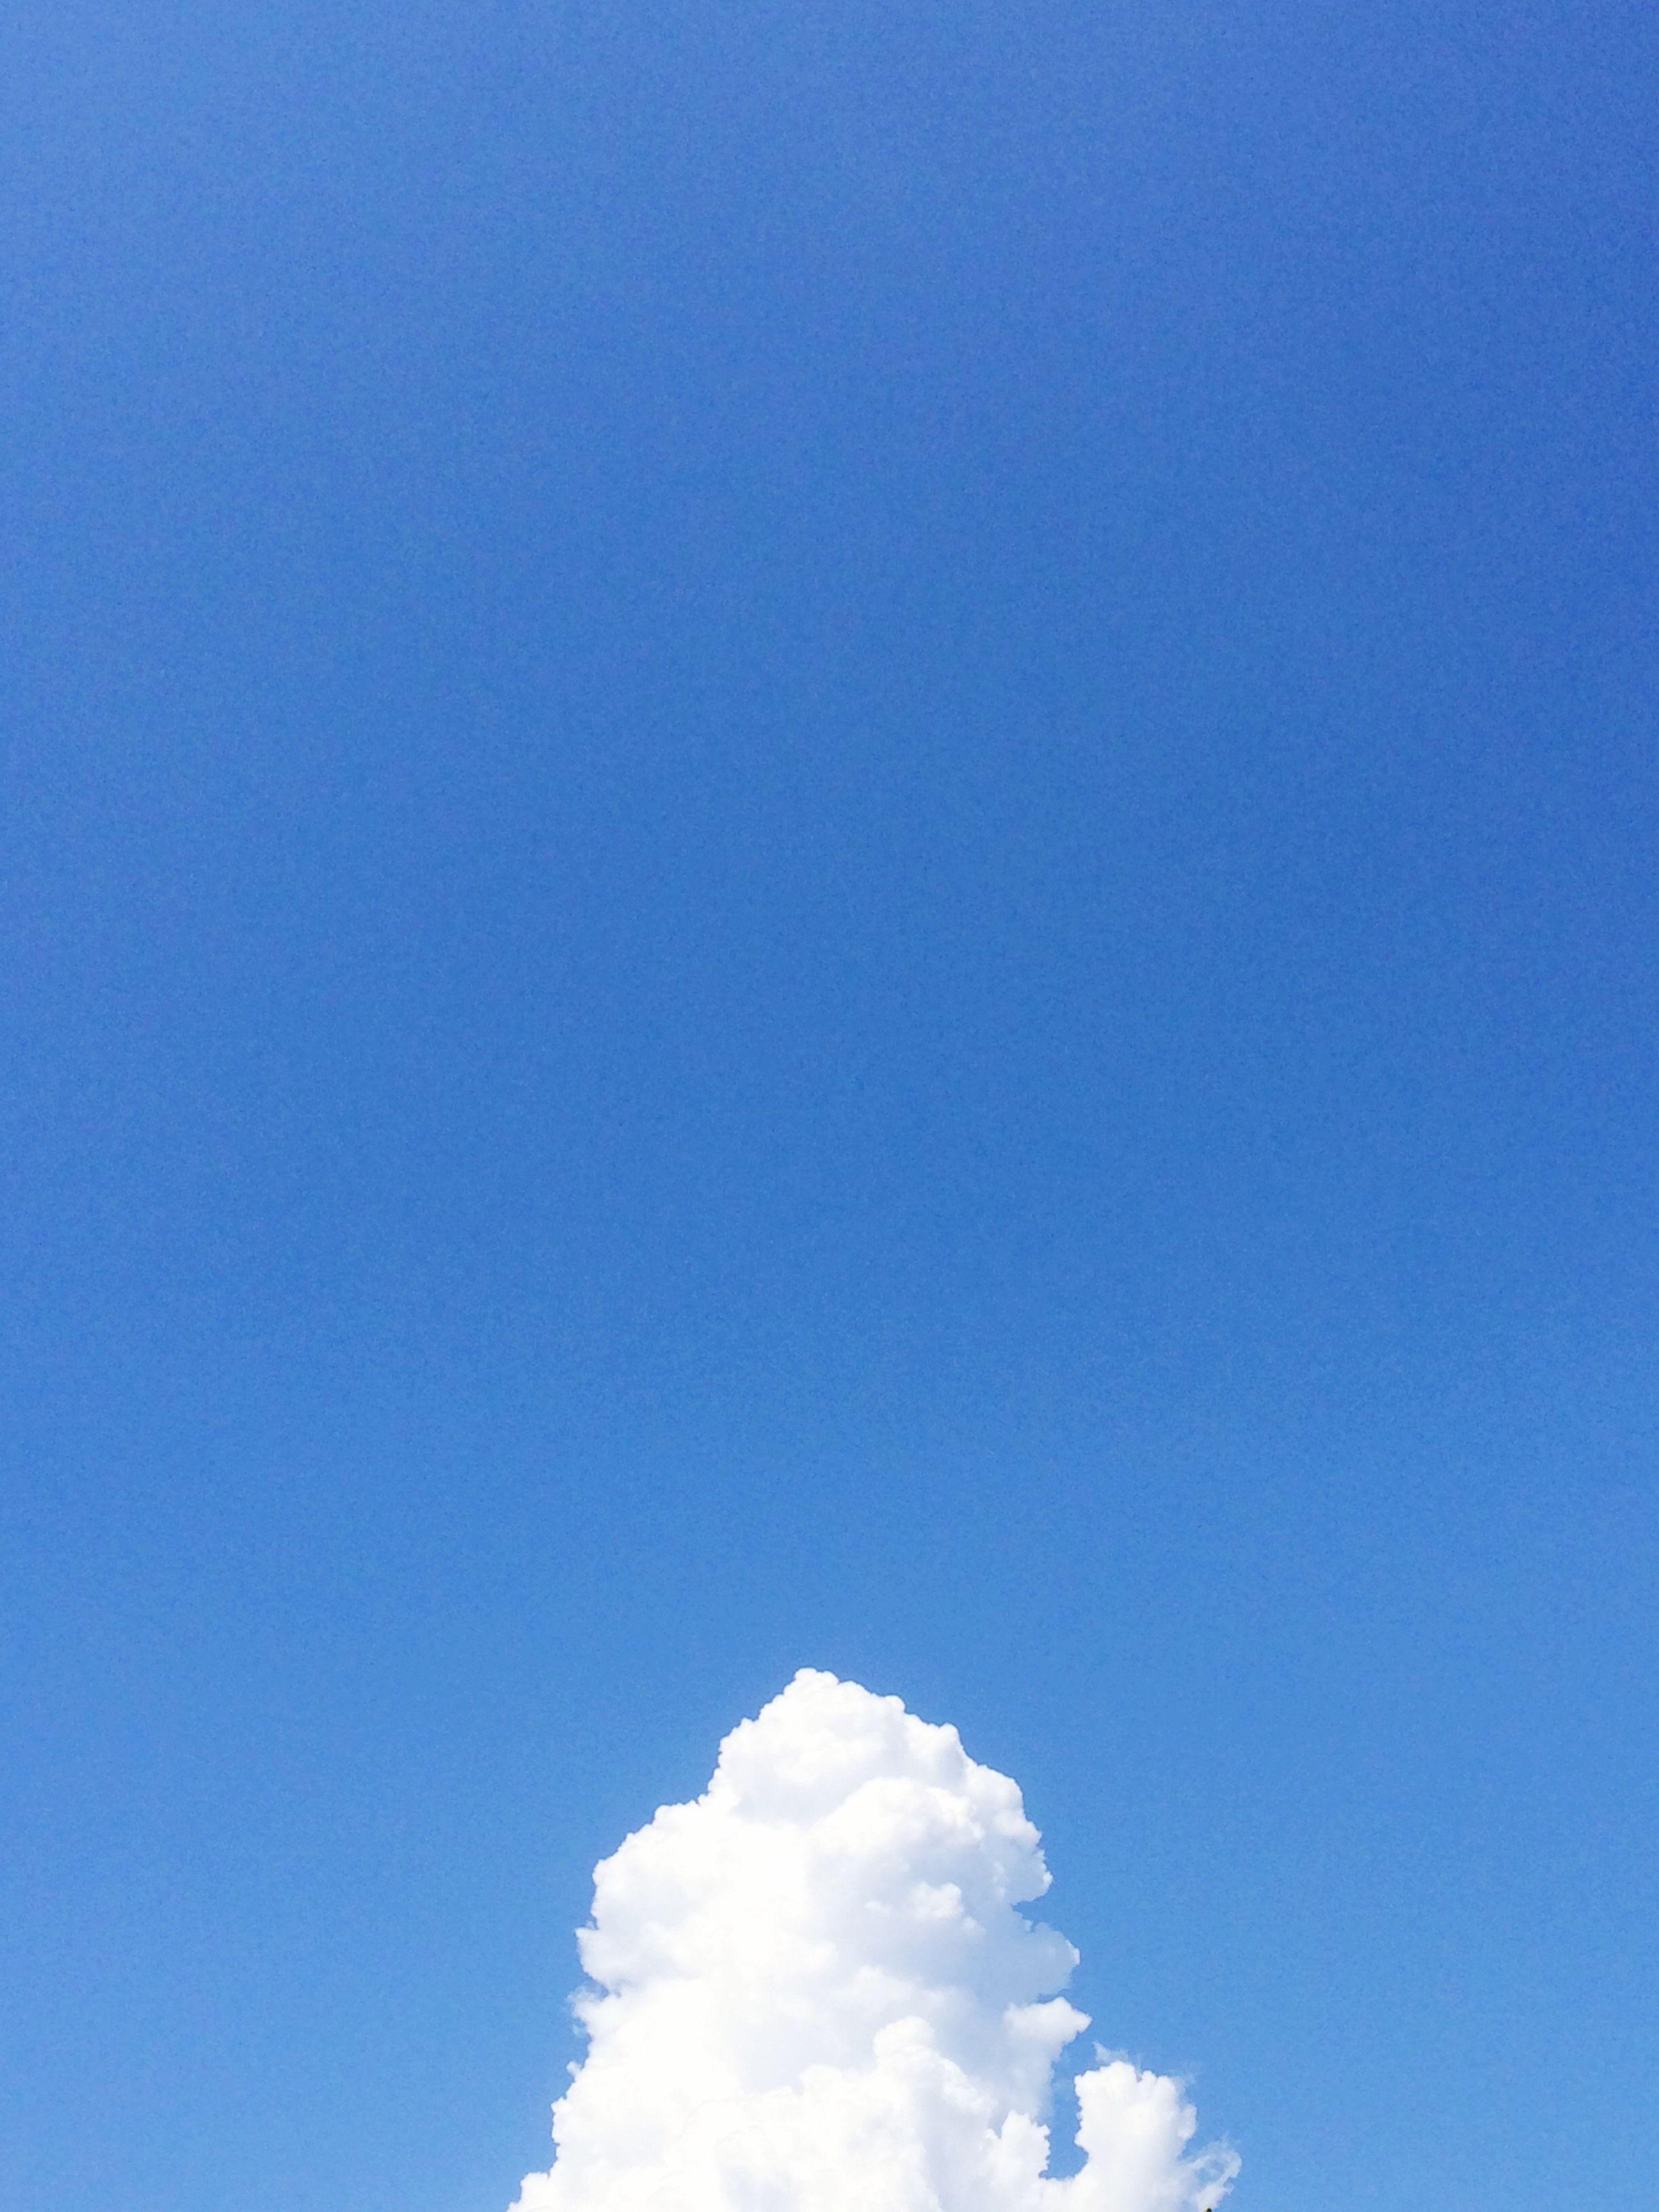 blue, copy space, low angle view, nature, day, no people, sky, outdoors, sky only, beauty in nature, clear sky